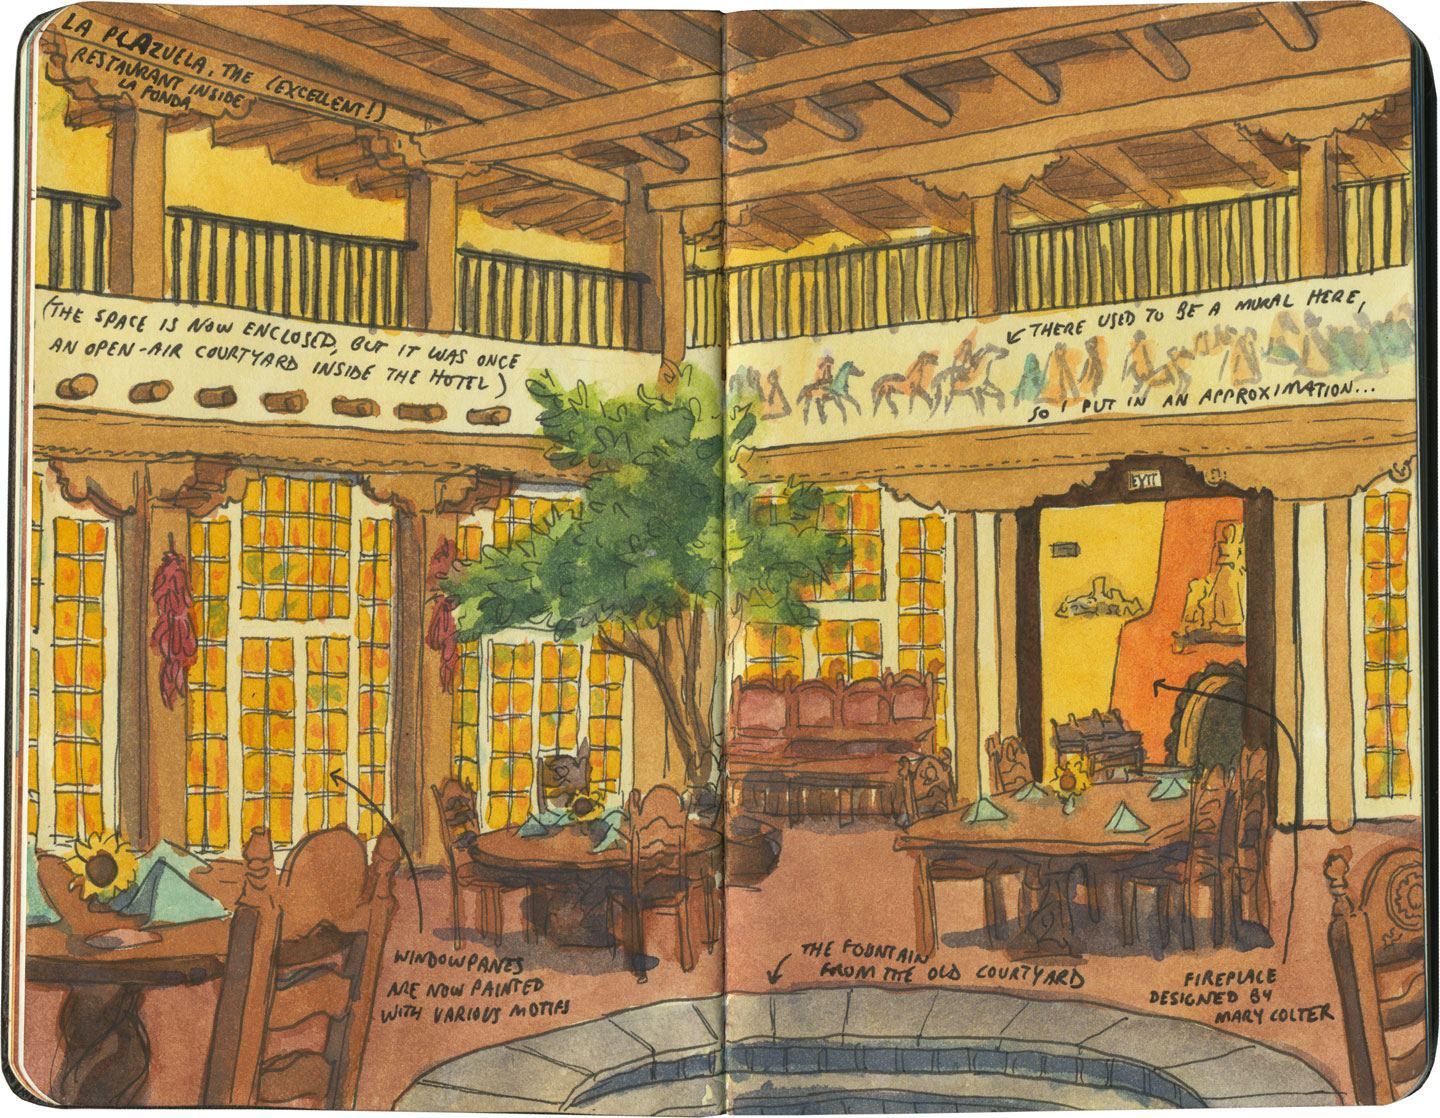 Santa Fe sketch by Chandler O'Leary, featuring Hotel La Fonda, a former Harvey House